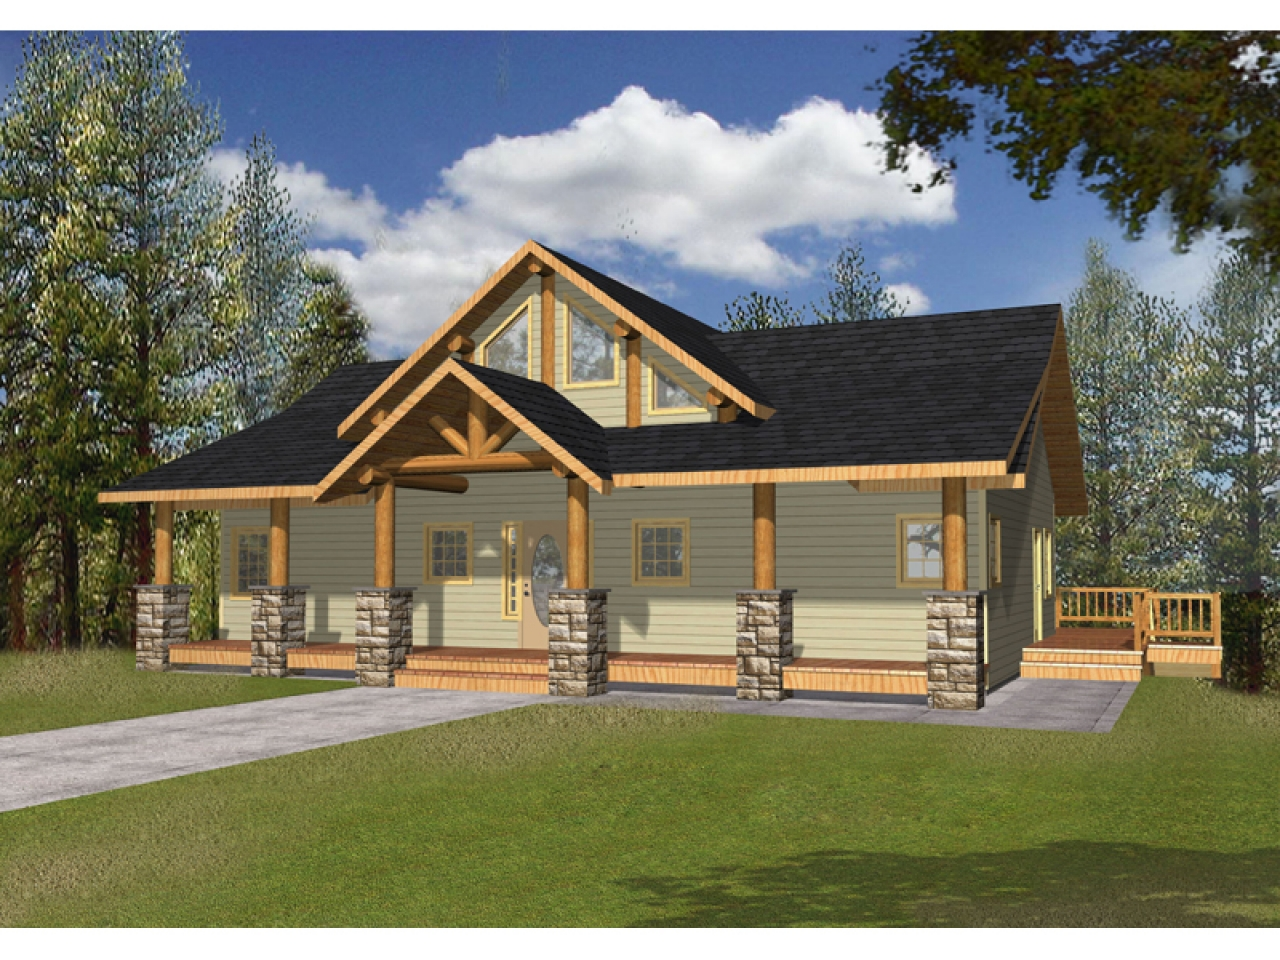 4 Bedroom House Plans Open Floor Farmhouse Craftsman Style